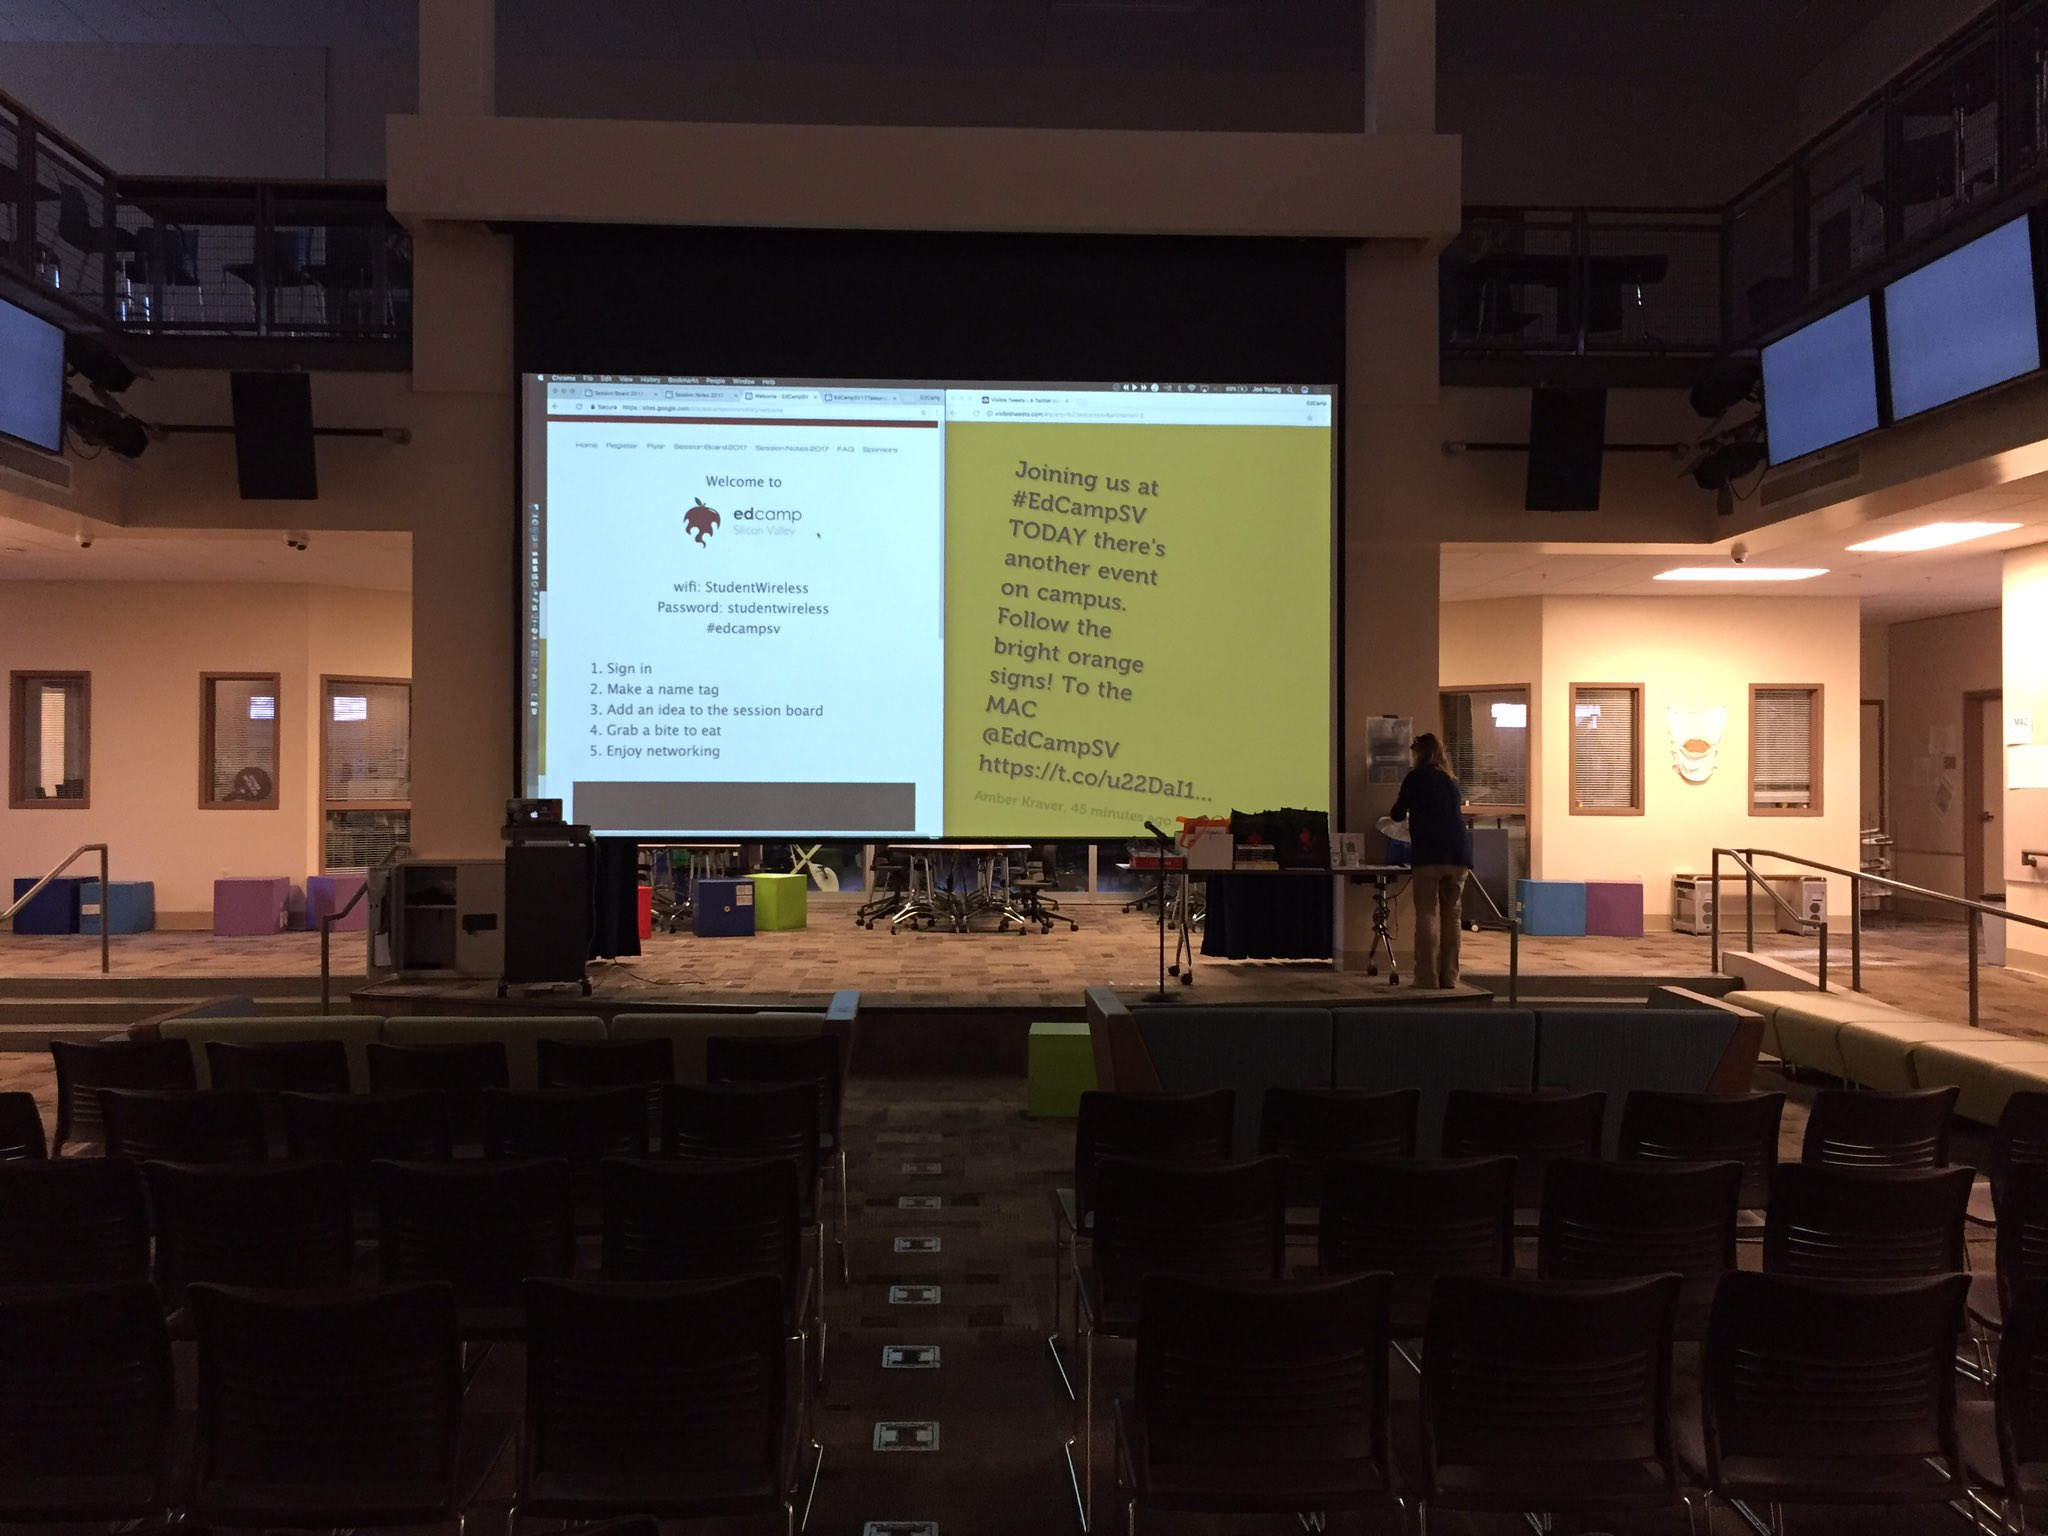 Are you ready for #EdCampSV? @EdCampSV https://t.co/a2WSTmKABG